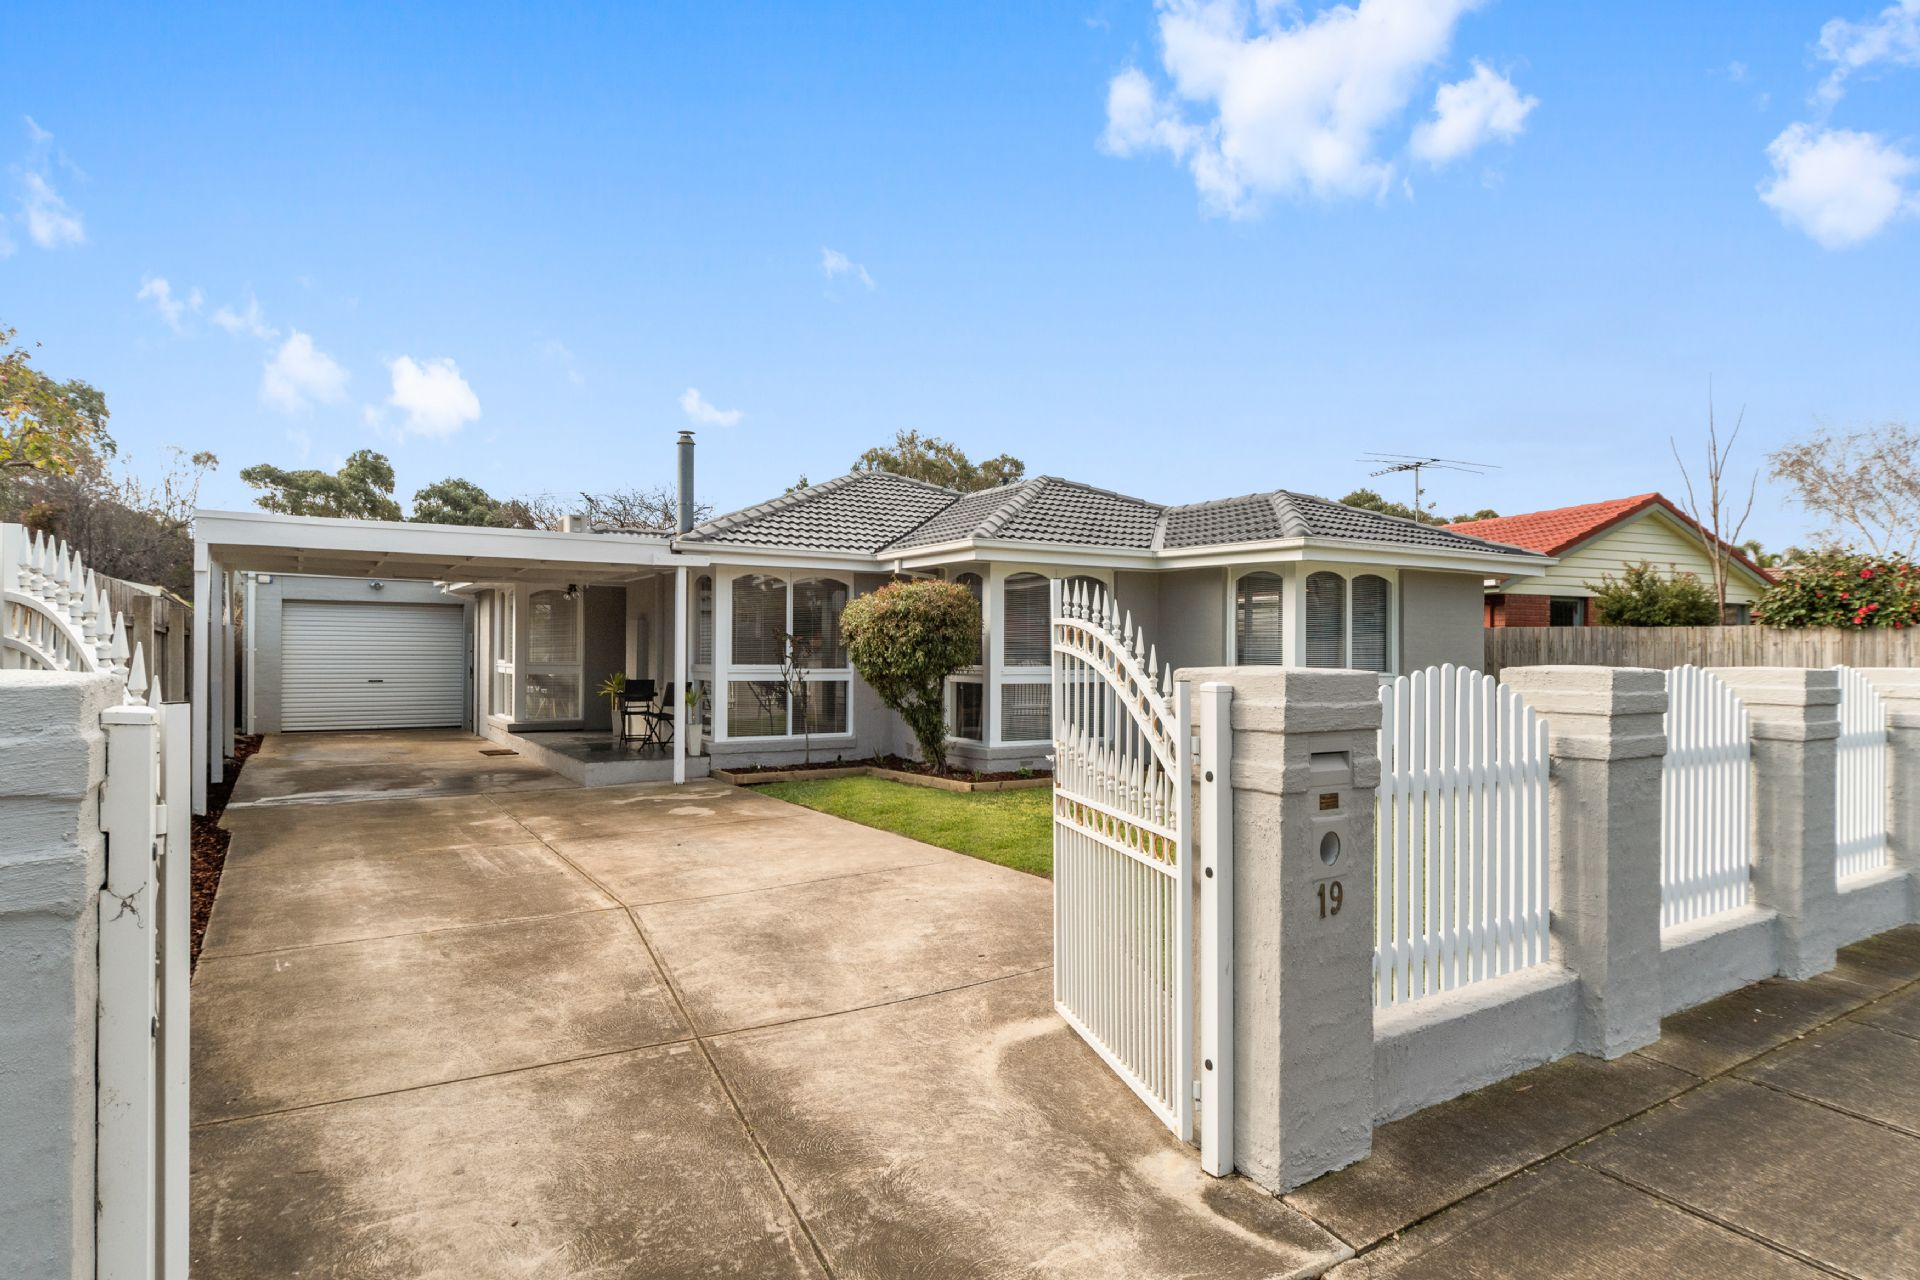 19 Maple Street, SEAFORD, VIC, 3198 - Image